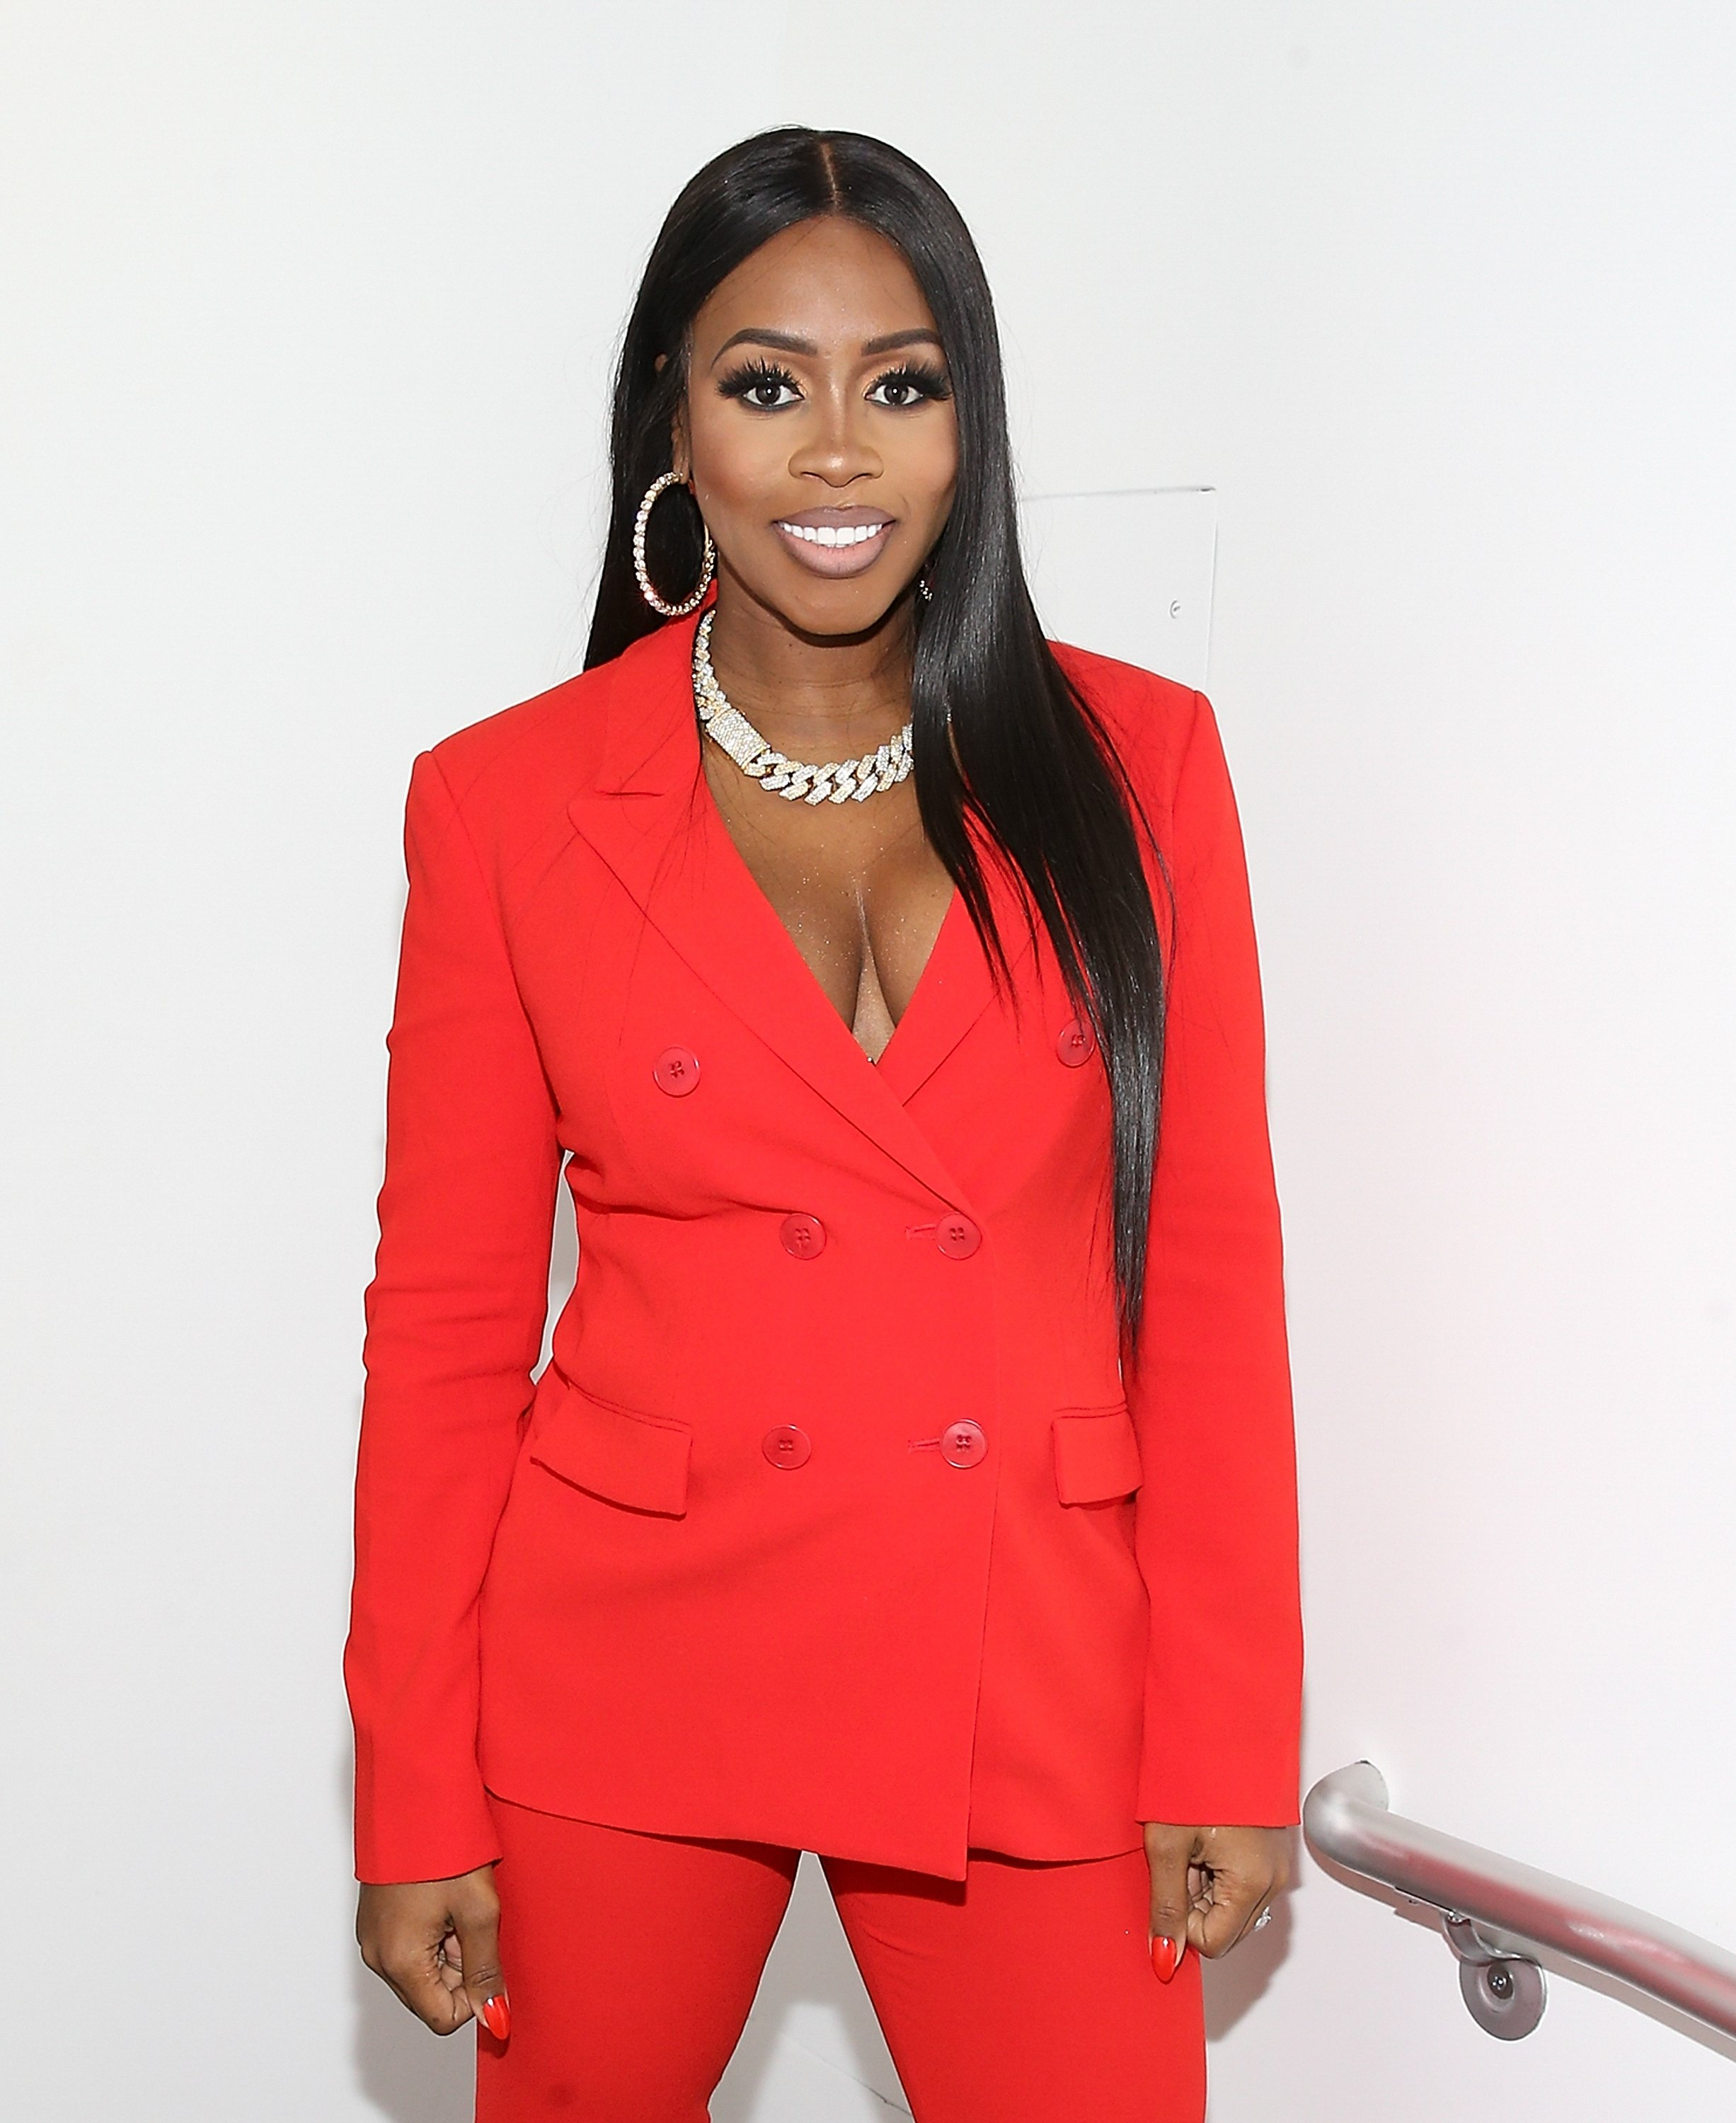 Remy Ma at the Times Square Studios in New York City in 2018. | Photo: Getty Images